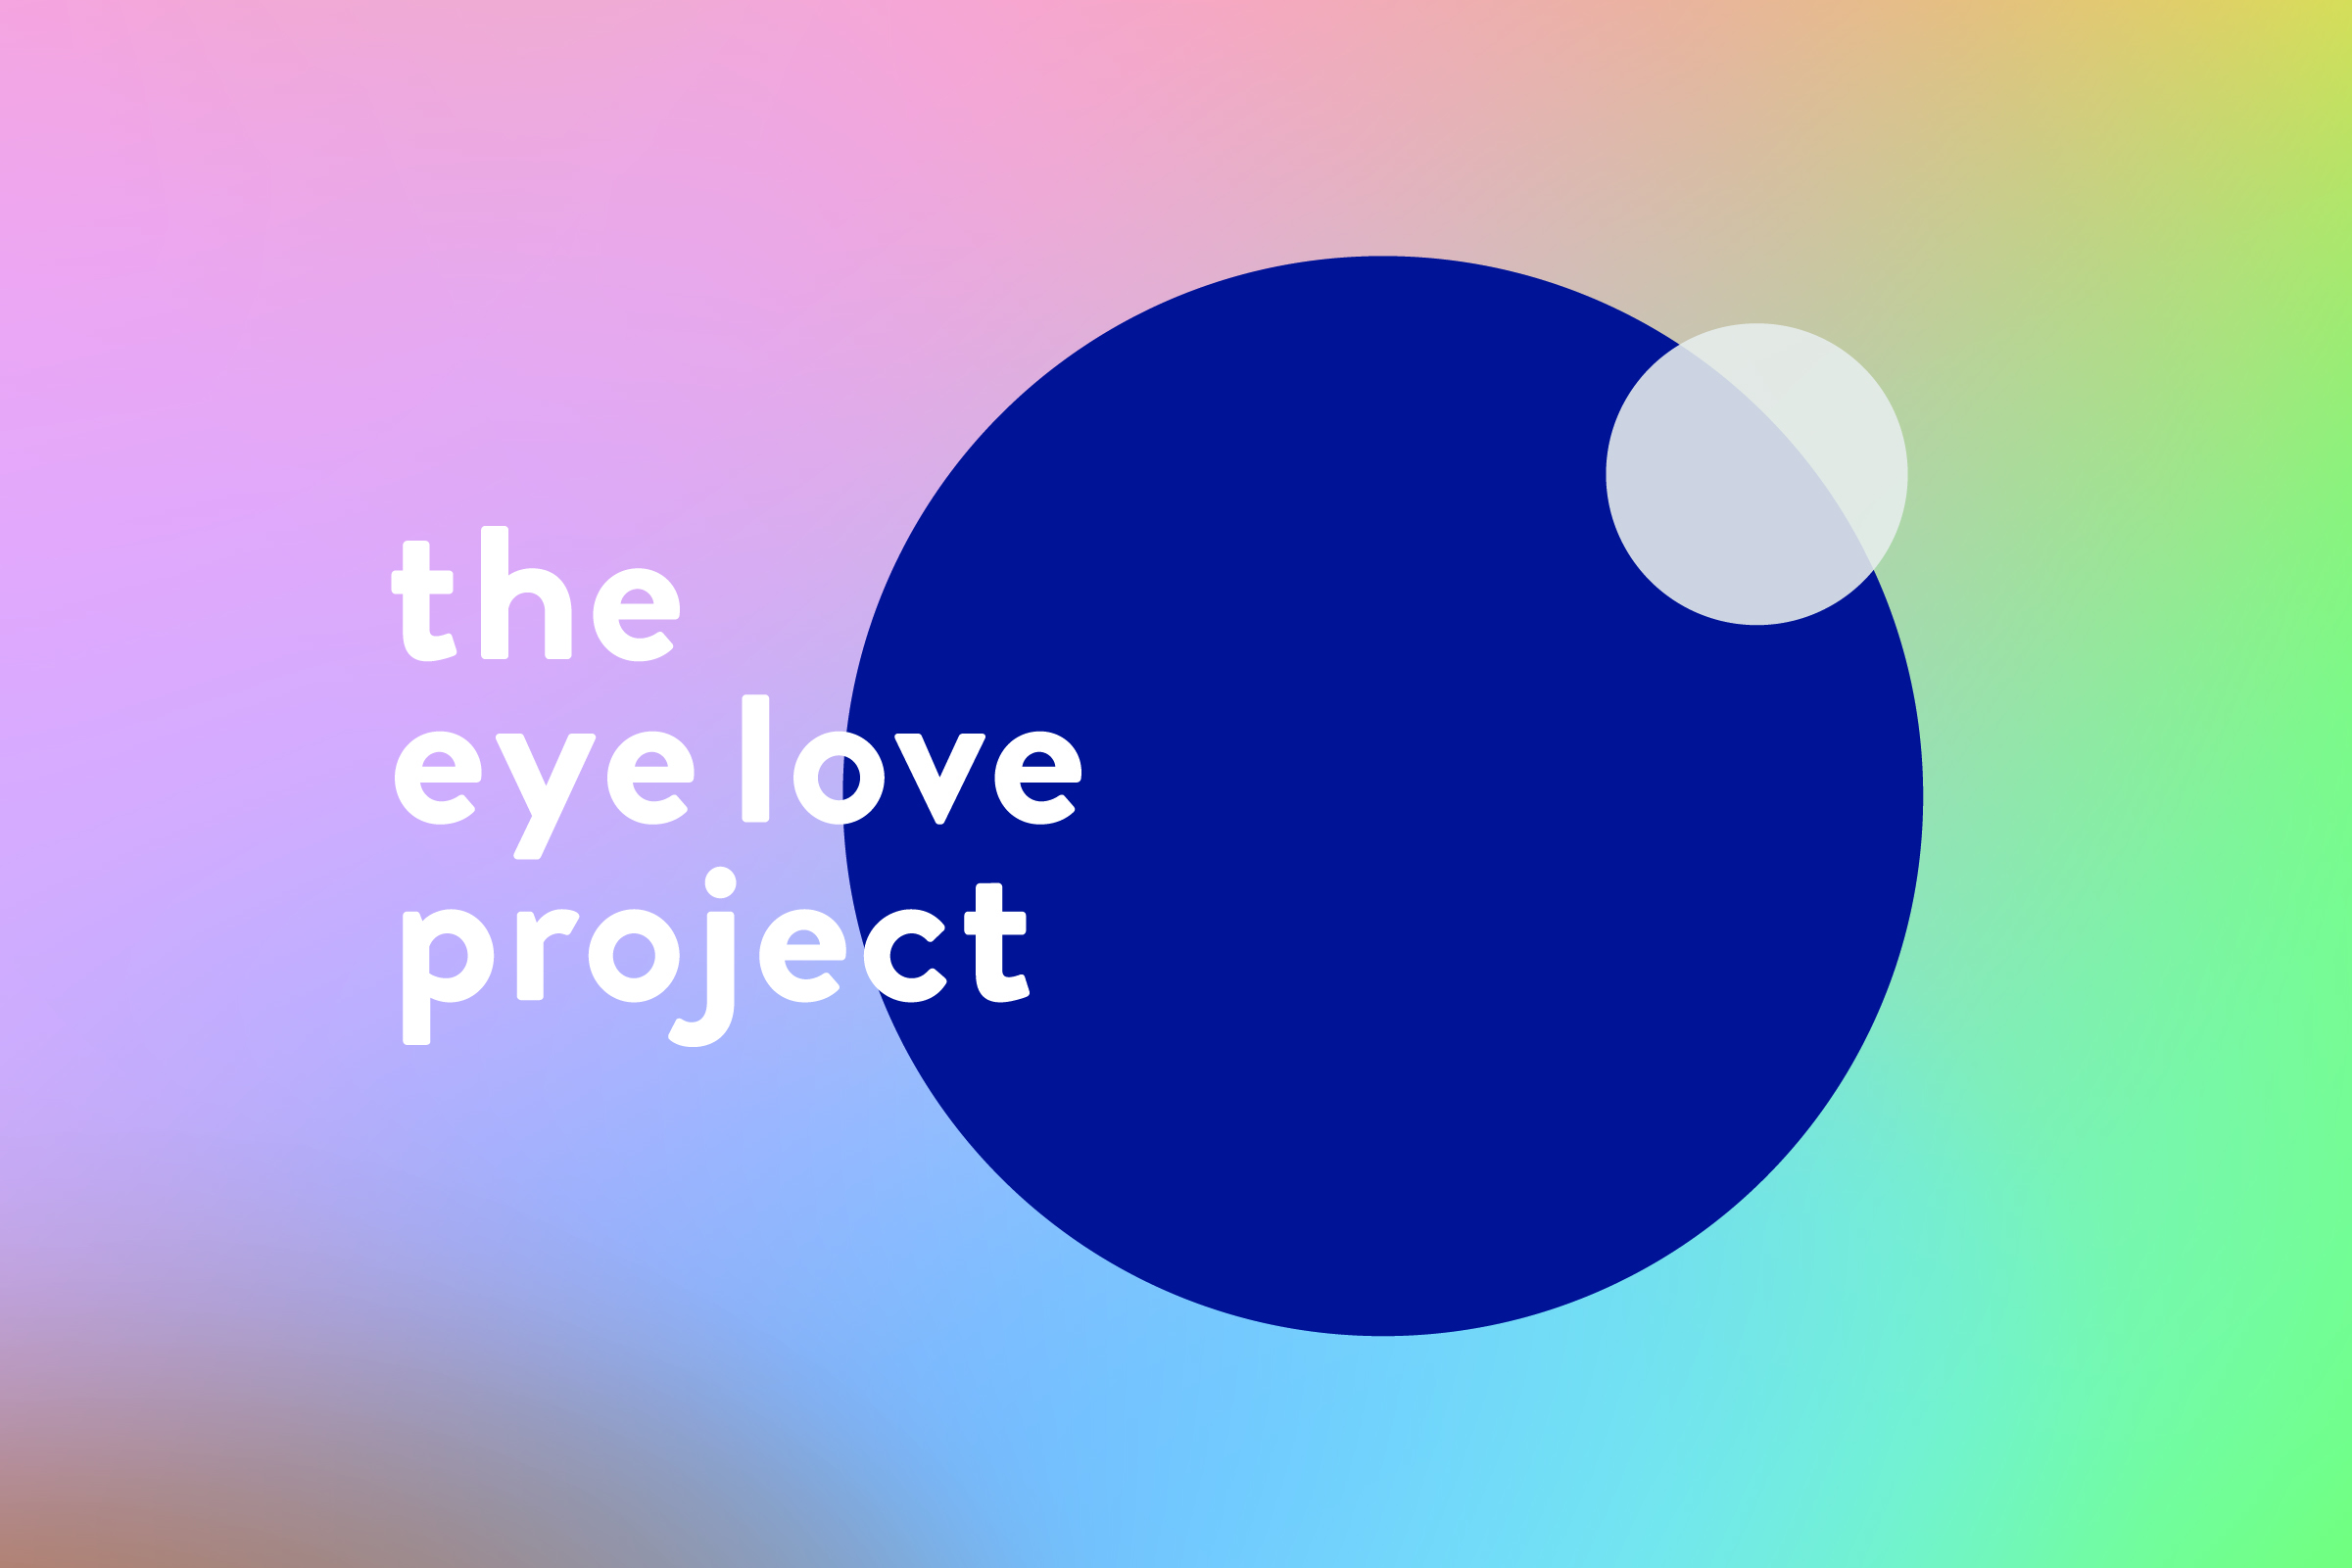 The Eye Love Project is an initiative to raise awareness about the importance of vision and the wonder of sight.